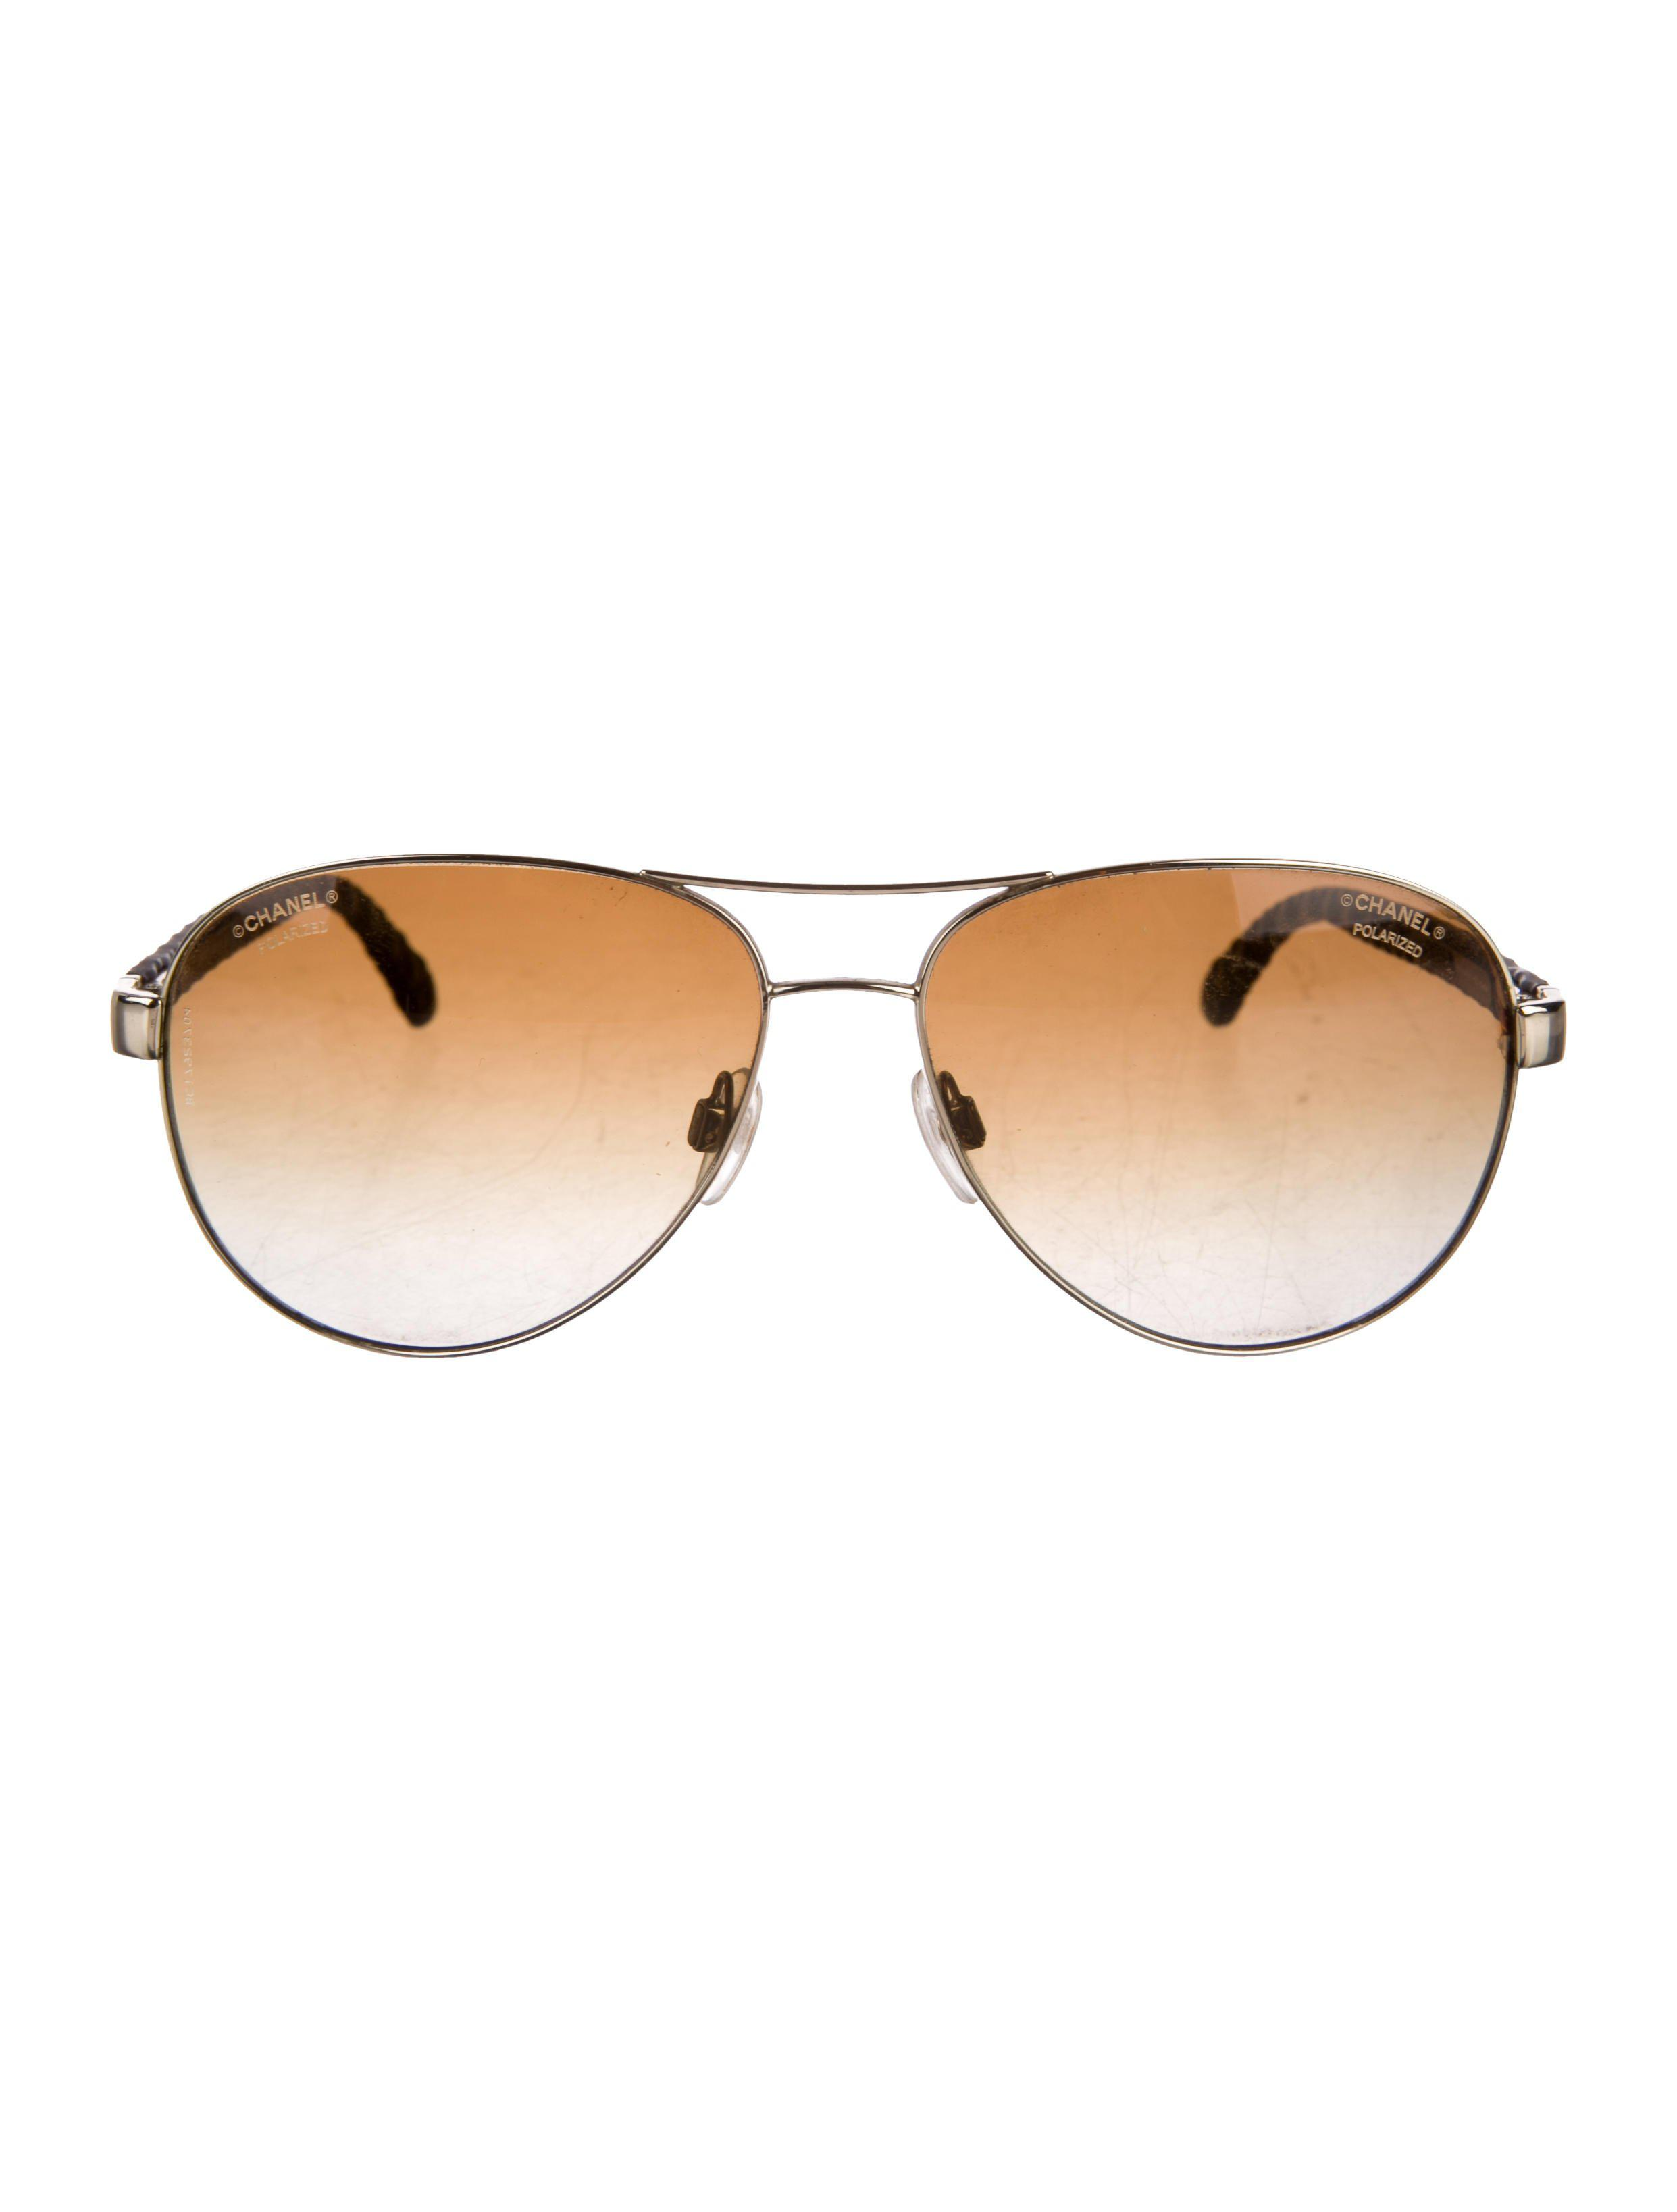 cce0383740 Lyst - Chanel Pilot Quilting Sunglasses Gold in Metallic for Men